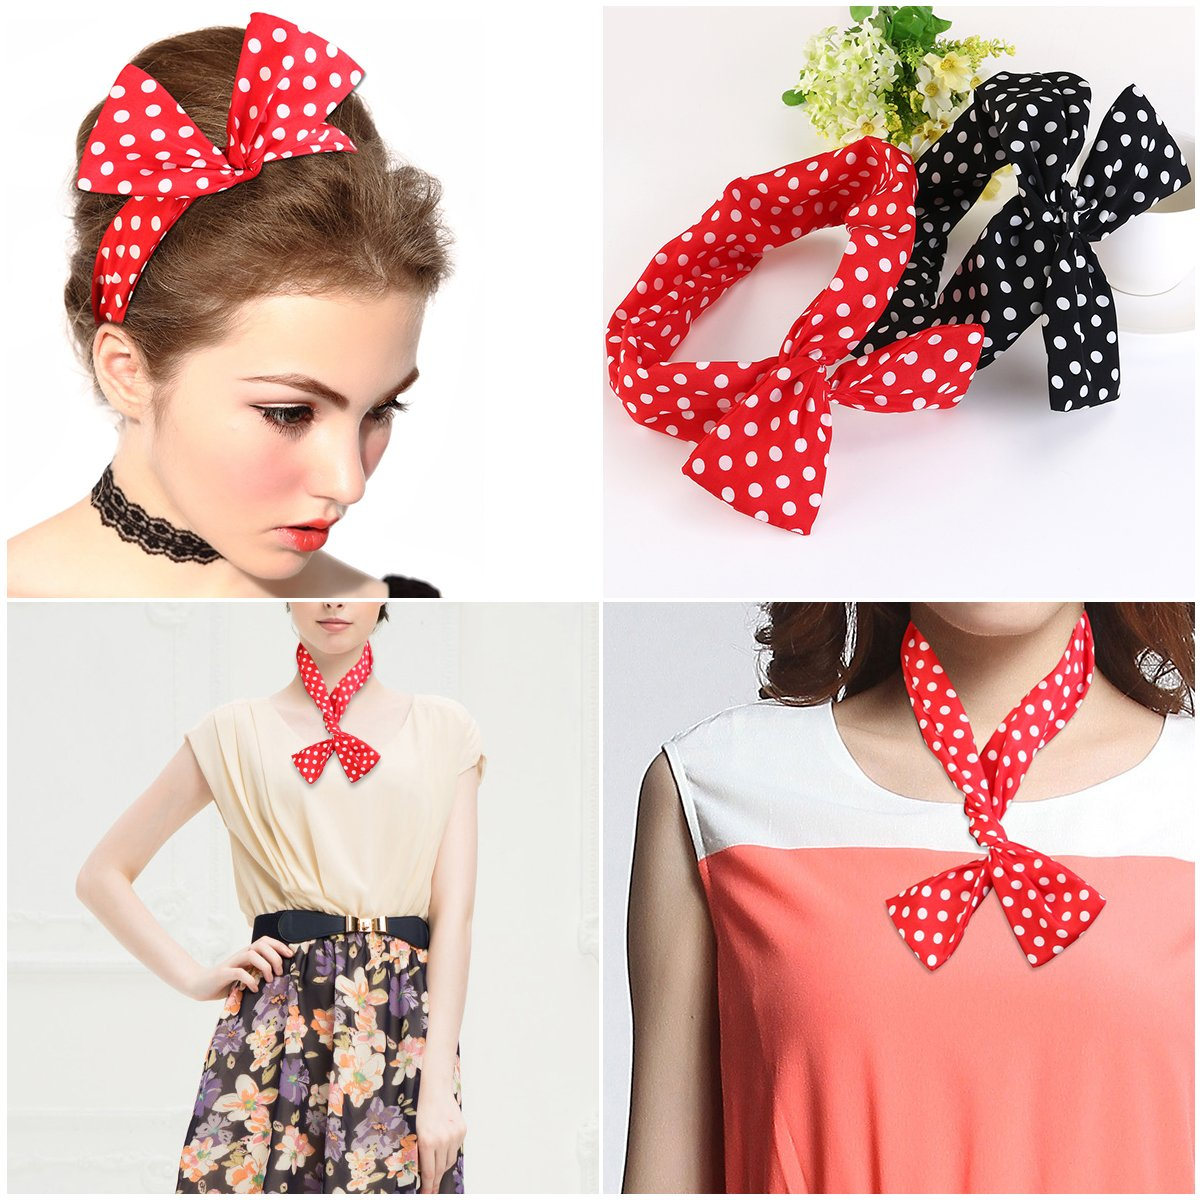 Wire Headband Retro Bowknot Polka Dot Wire Hair Holders for Women and Girls, Pack of 2